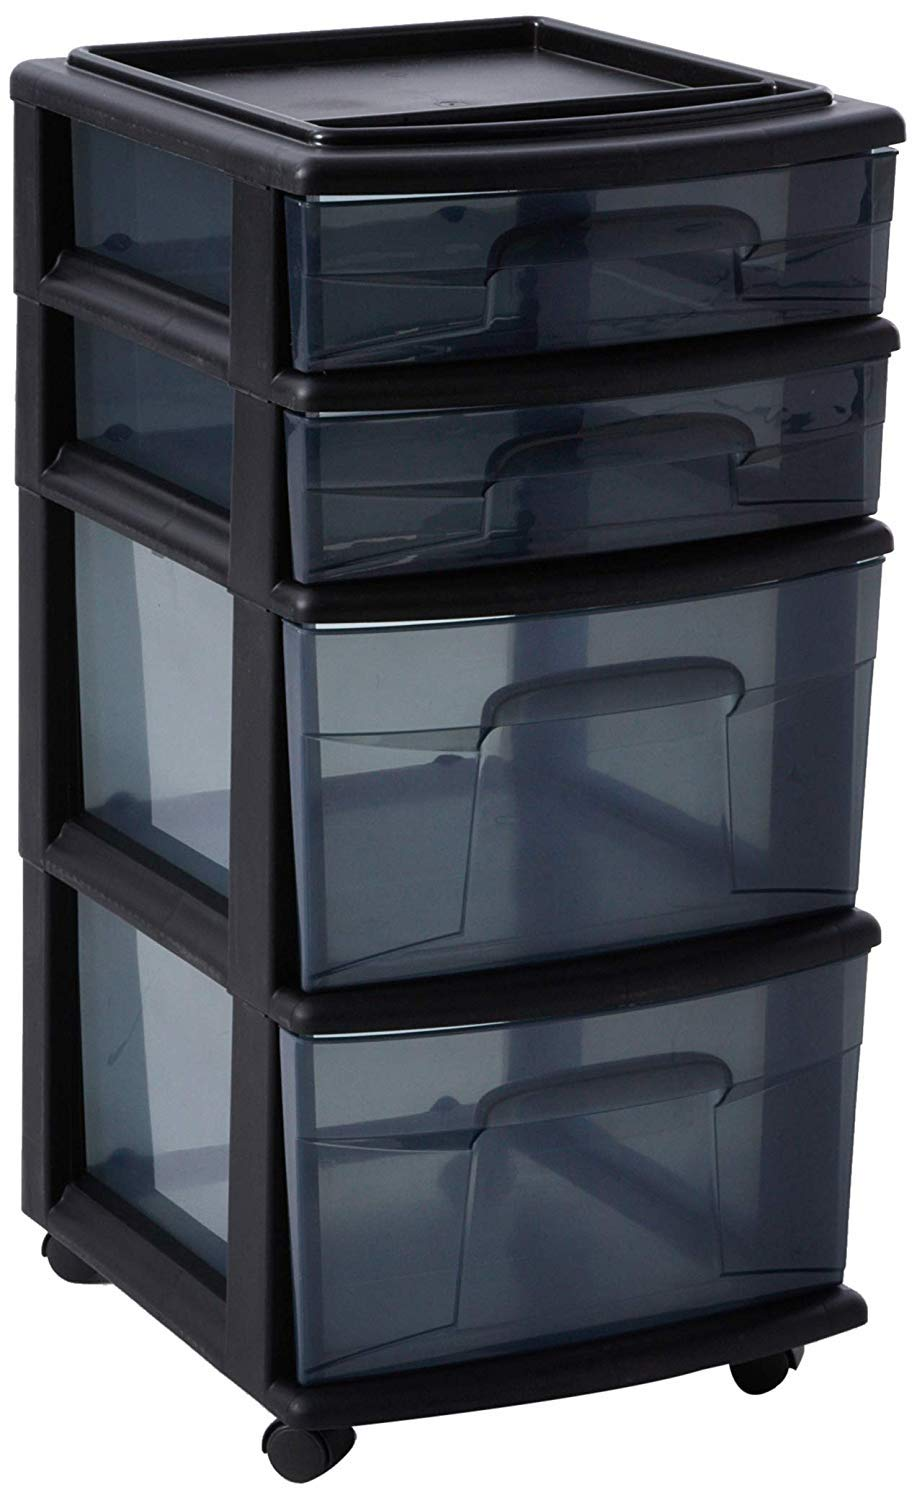 HOMZ Plastic 4 Drawer Medium Cart, Black Frame with Smoke Tint Drawers, Casters Included, Set of 1 by HOMZ